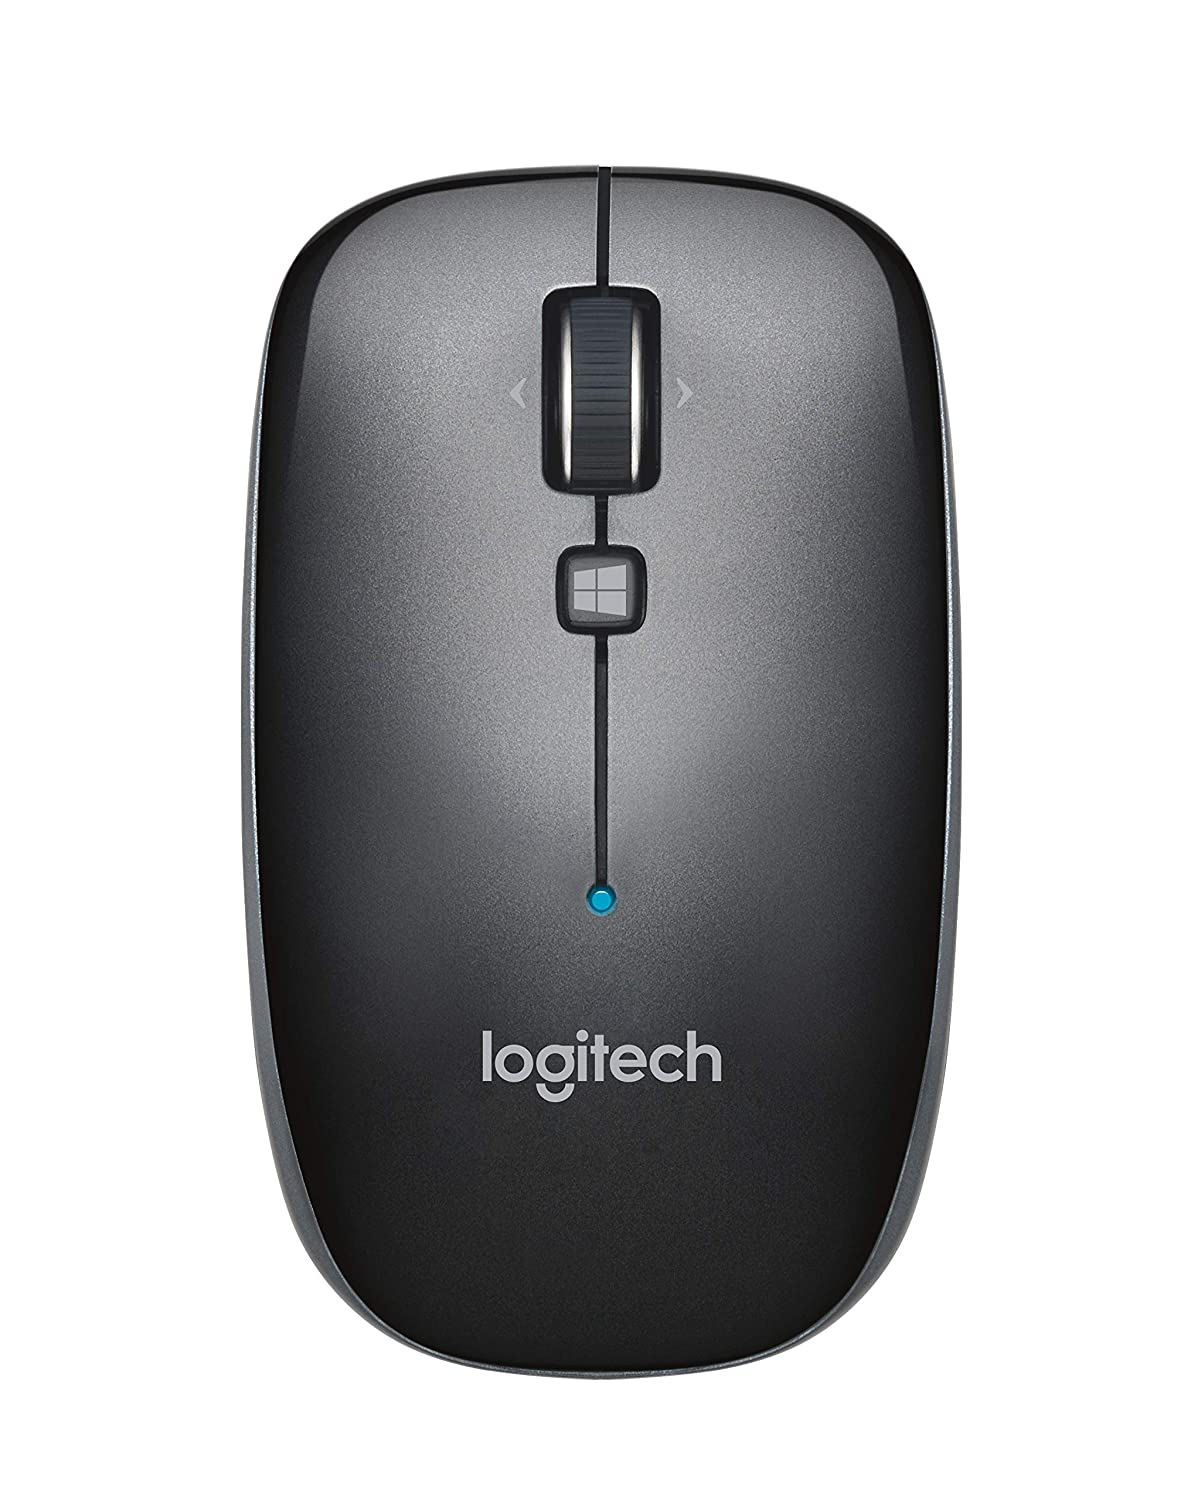 953d8097df7 Amazon.in: Buy Logitech M557 Bluetooth Optical Mouse Online at Low Prices  in India | Logitech Reviews & Ratings